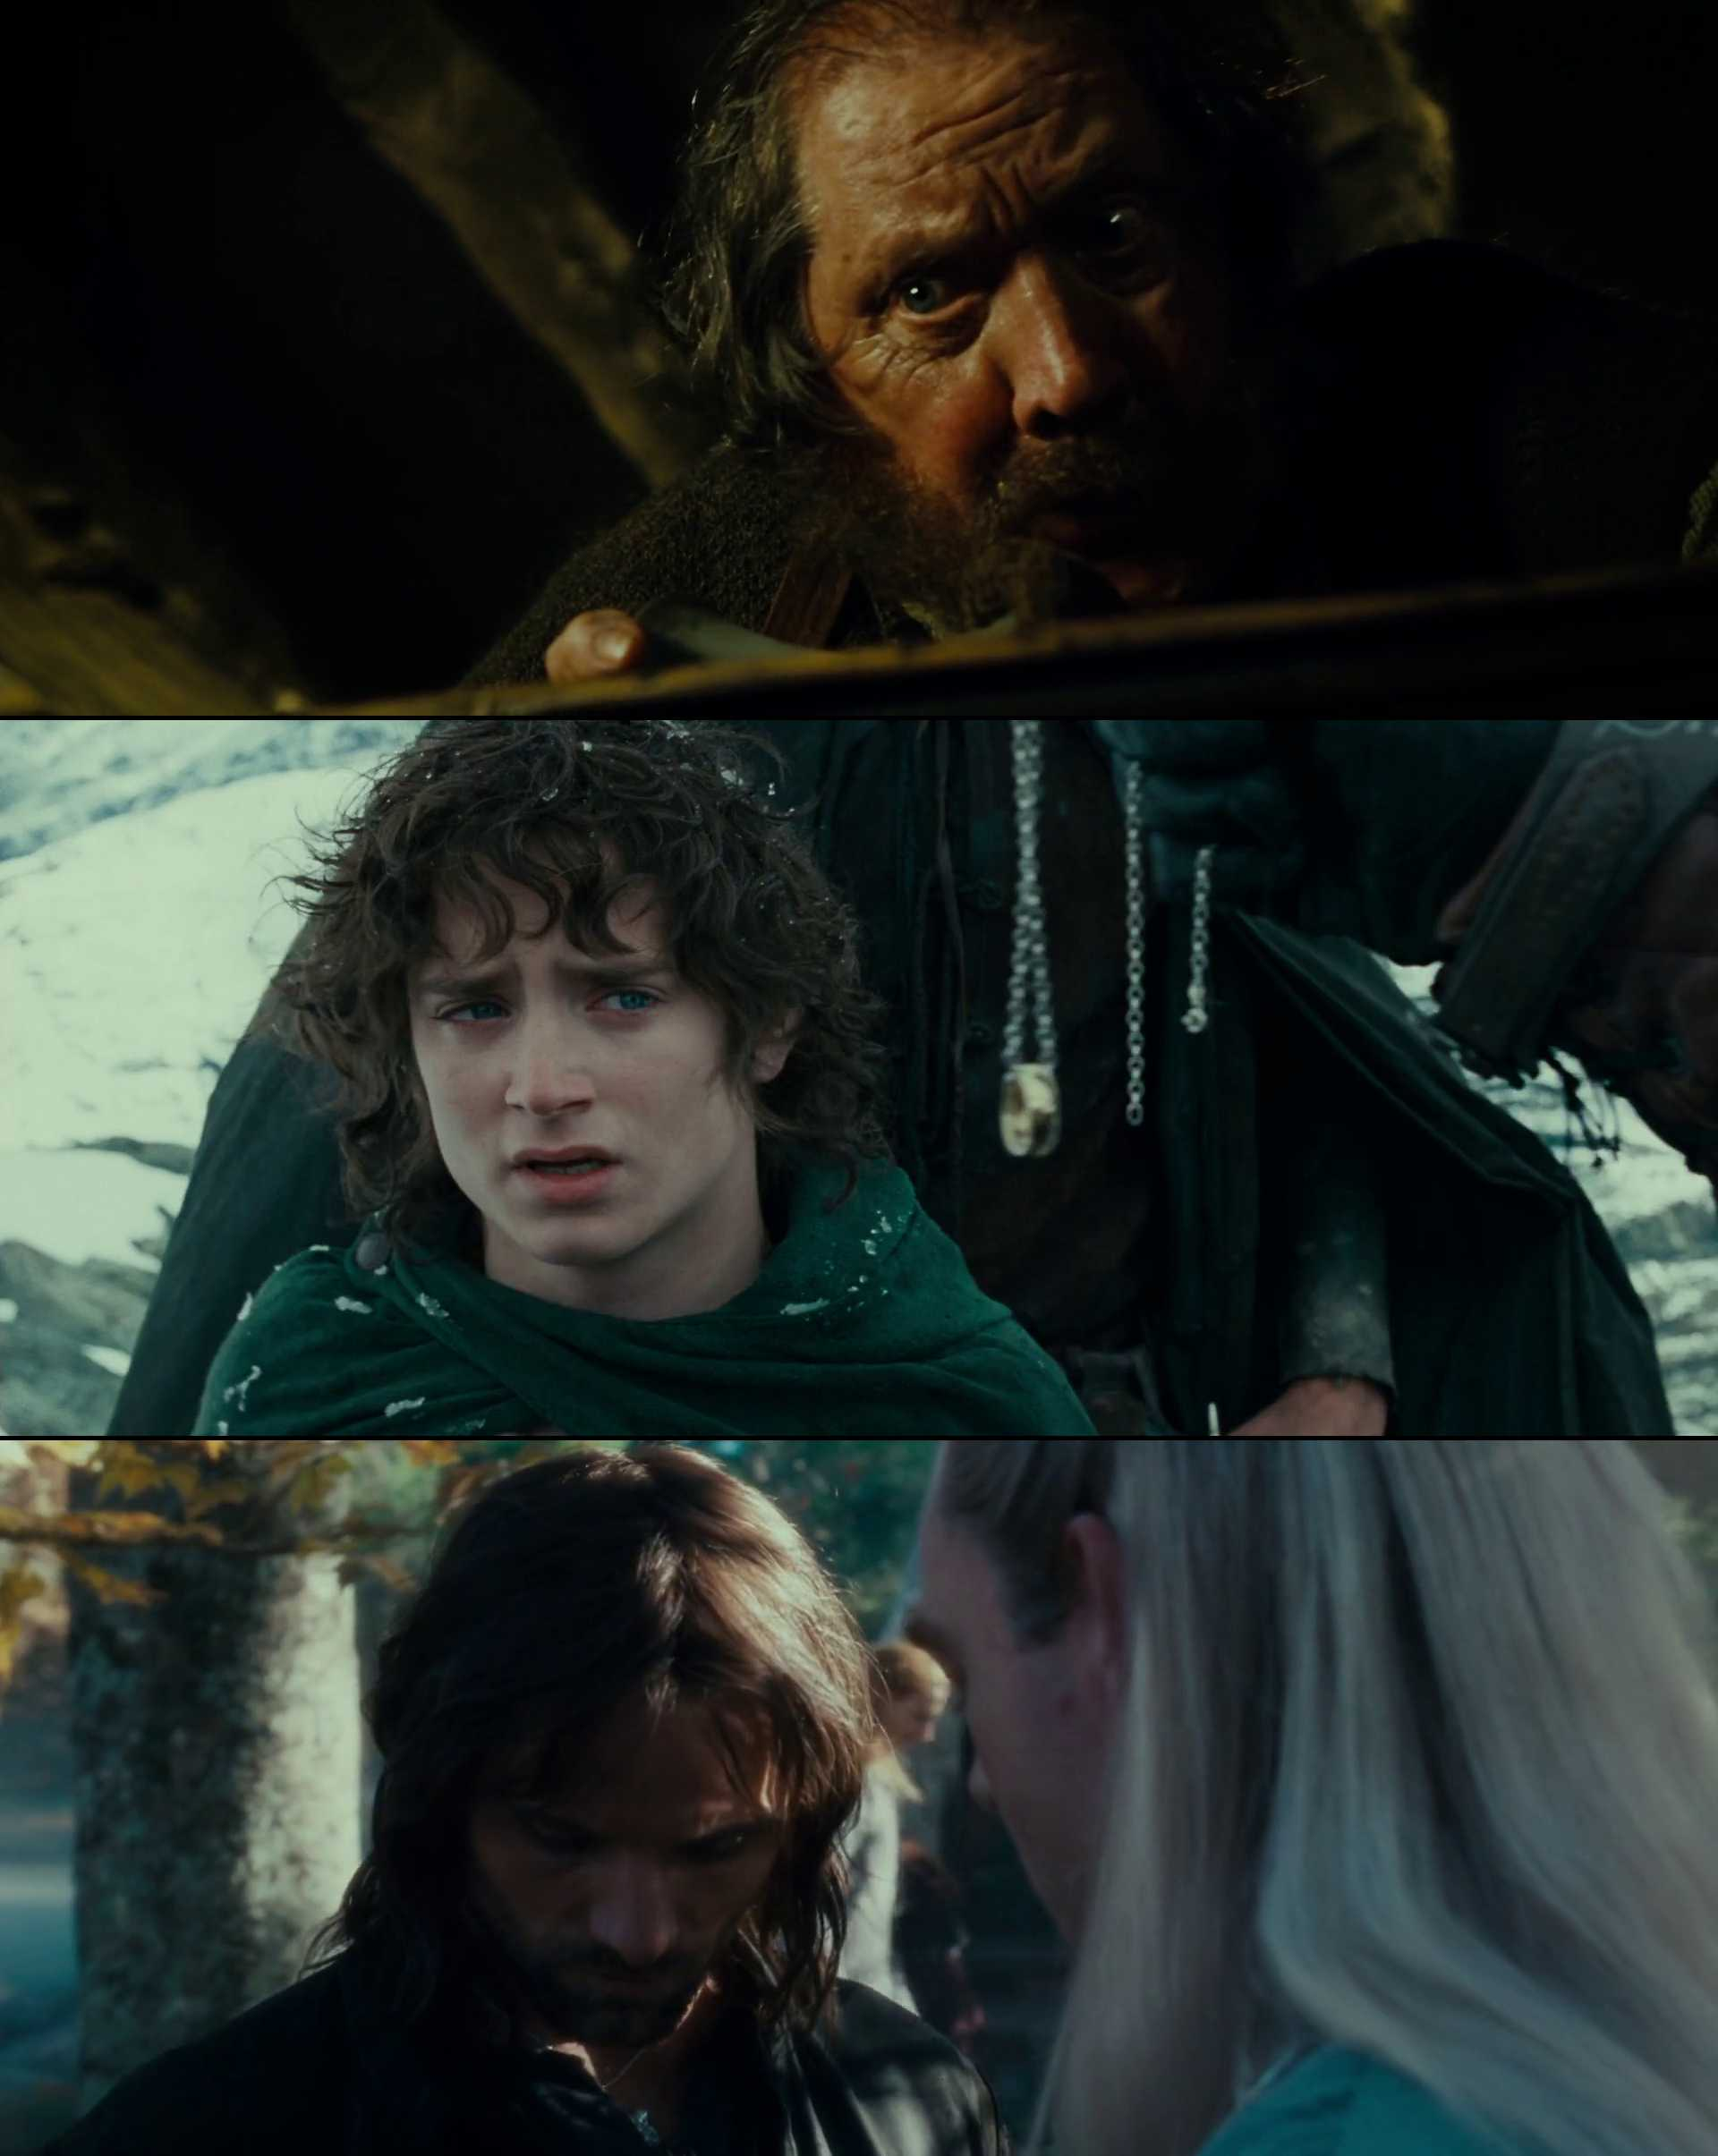 Screenshot of The Lord of the Rings: The Fellowship of the Ring